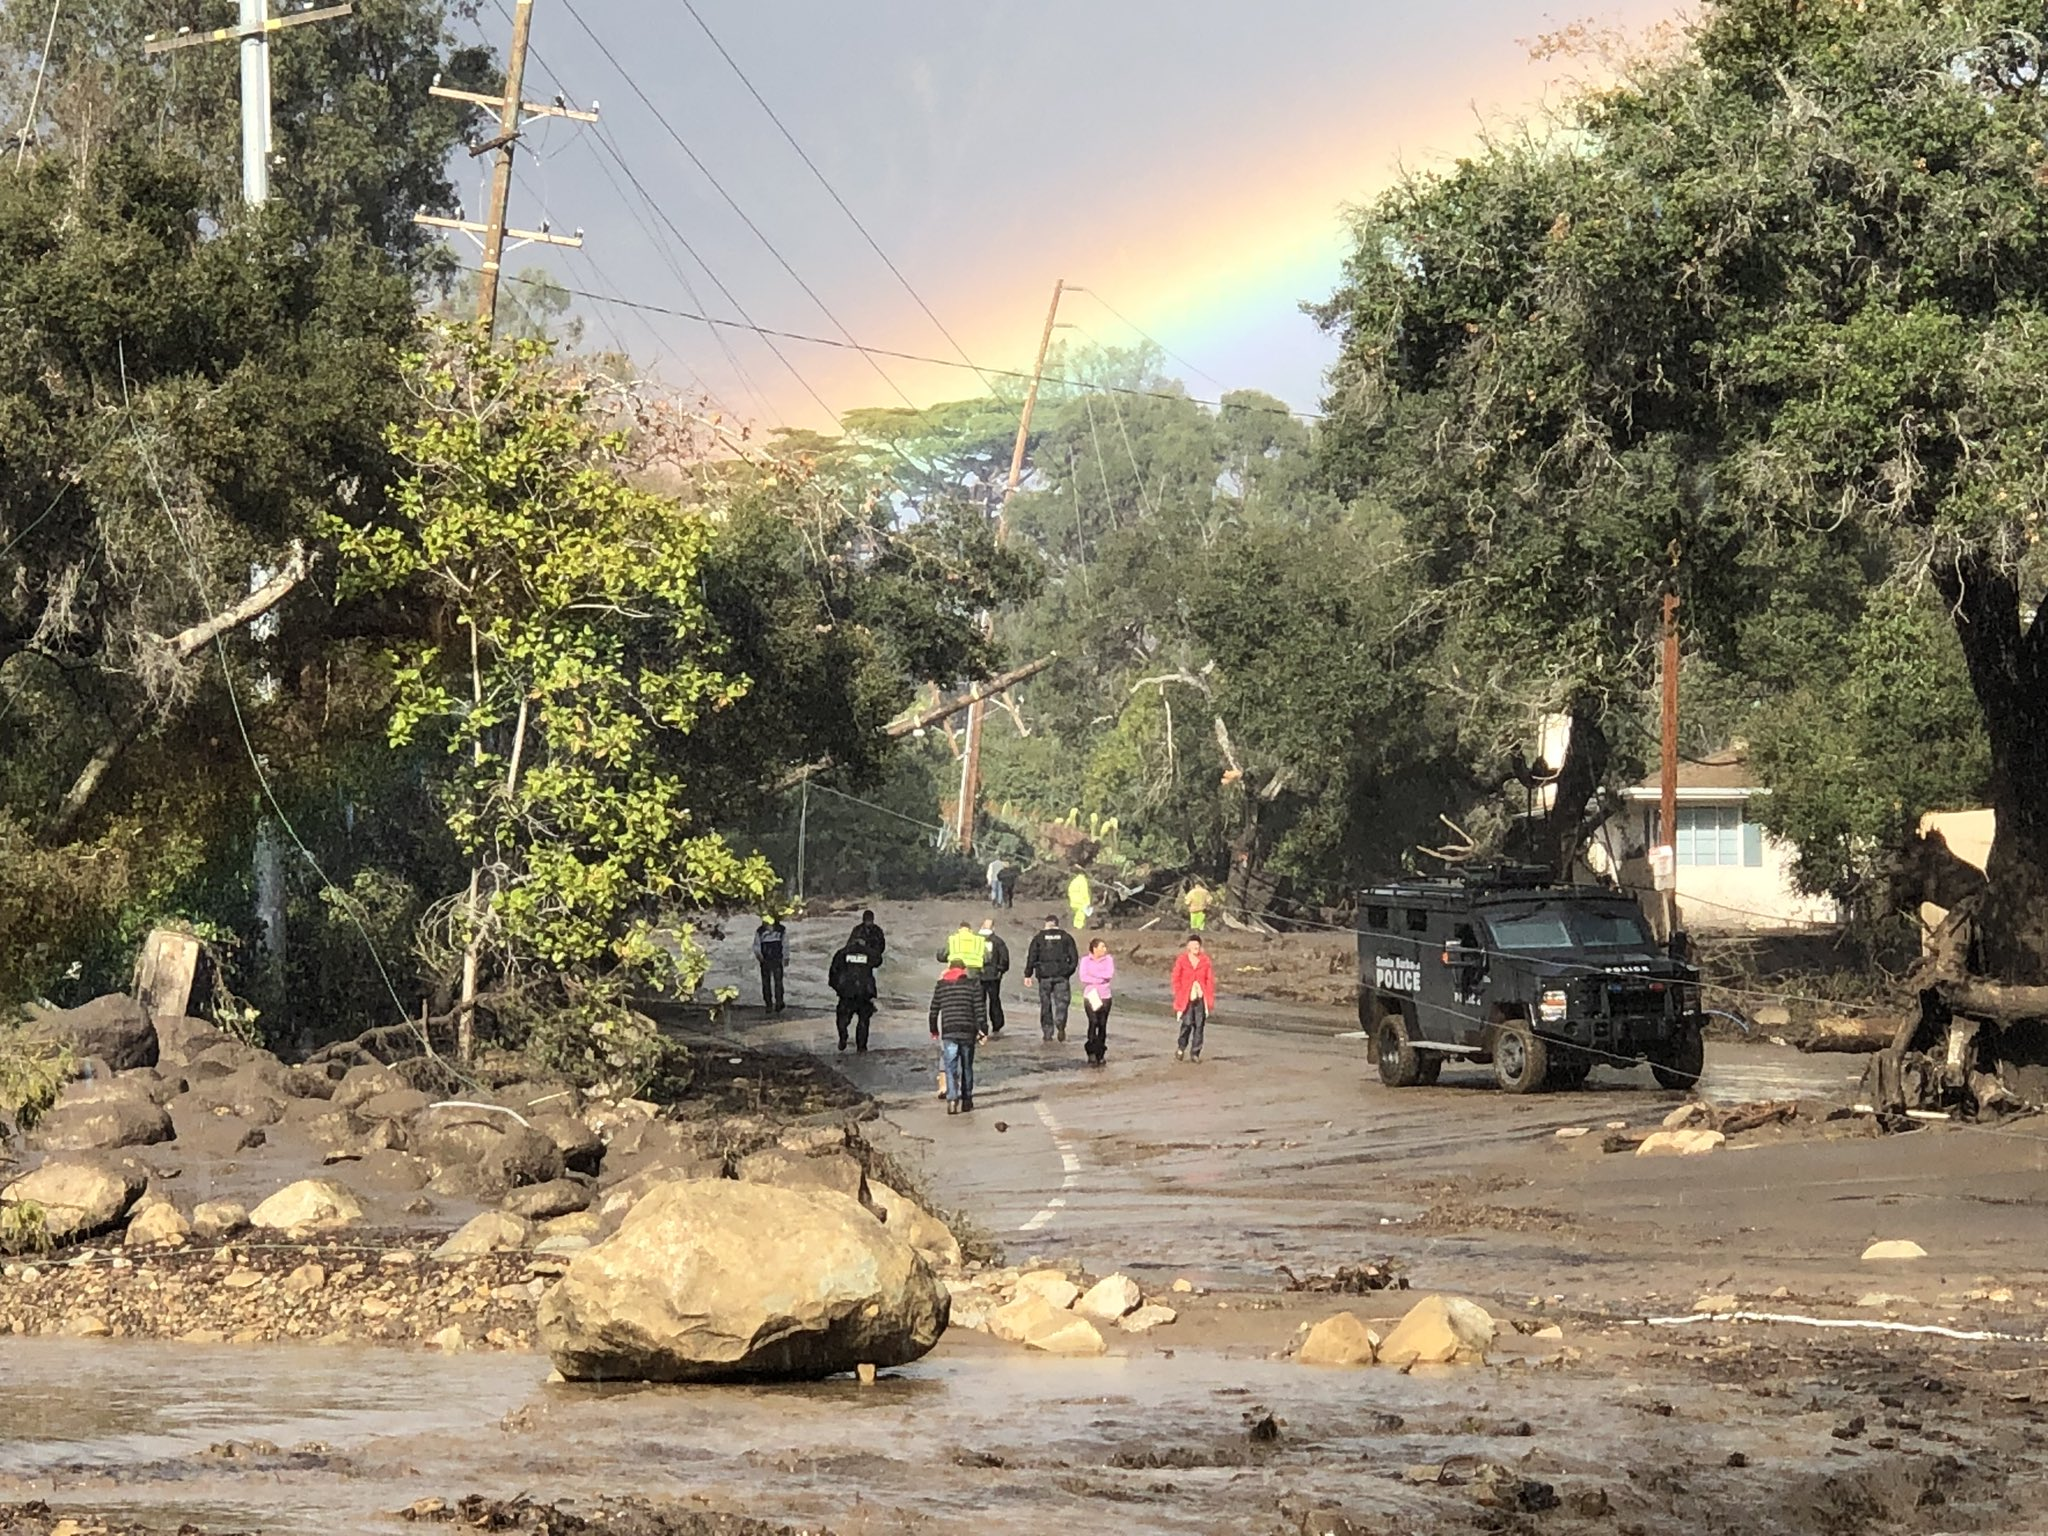 A rainbow forms above Montecito while law enforcement and the curious survey the destruction on Hot Springs Road in Montecito. Deadly overnight mudflow and debris destroyed several homes in the area.{ }(Photo & Caption: Mike Eliason, Santa Barbara County Fire Dept.)